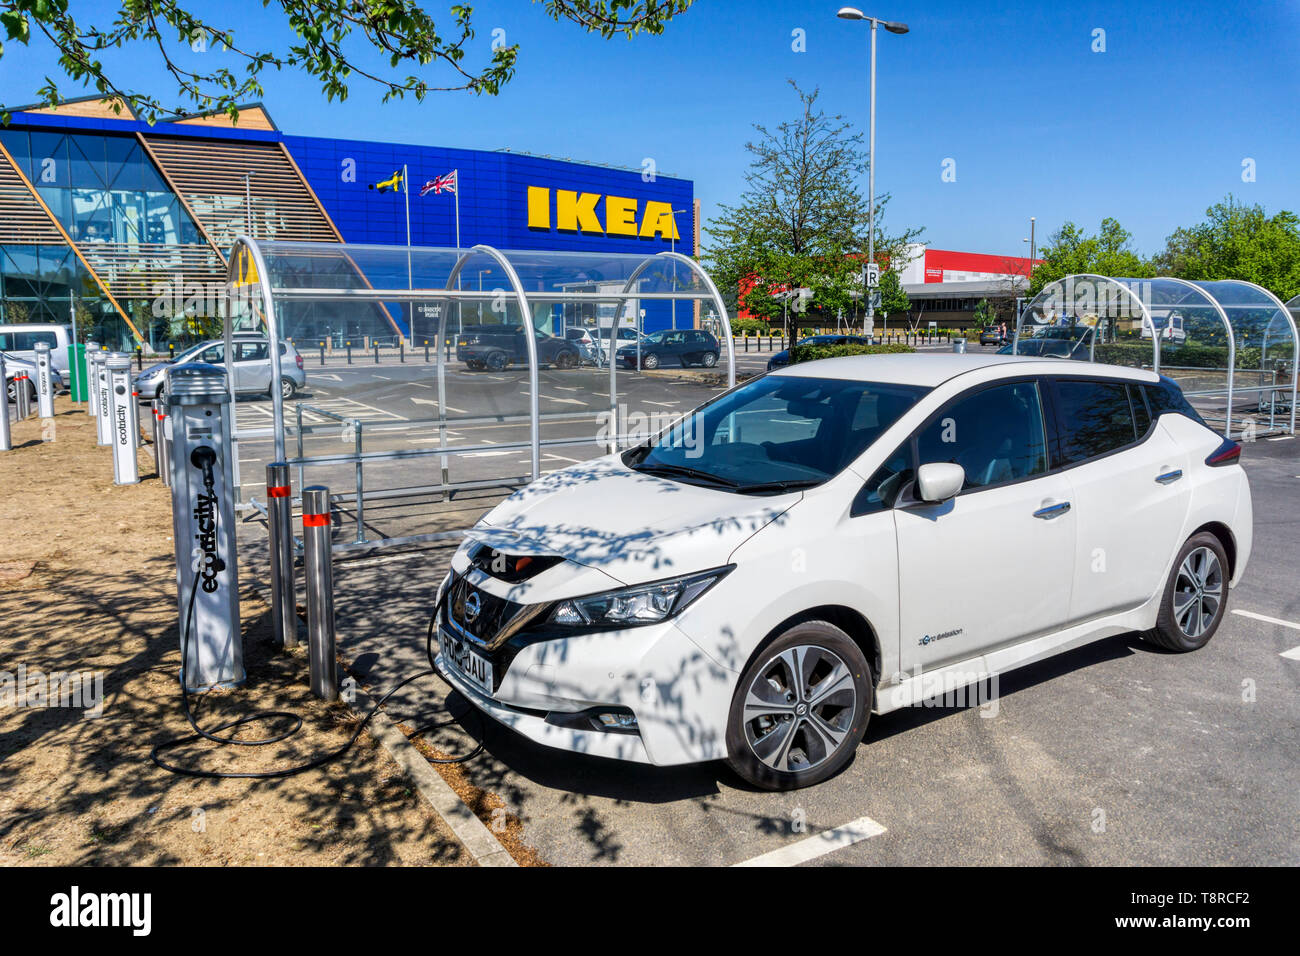 Ikea Tv Wagen Ikea Car Park Stock Photos Ikea Car Park Stock Images Alamy